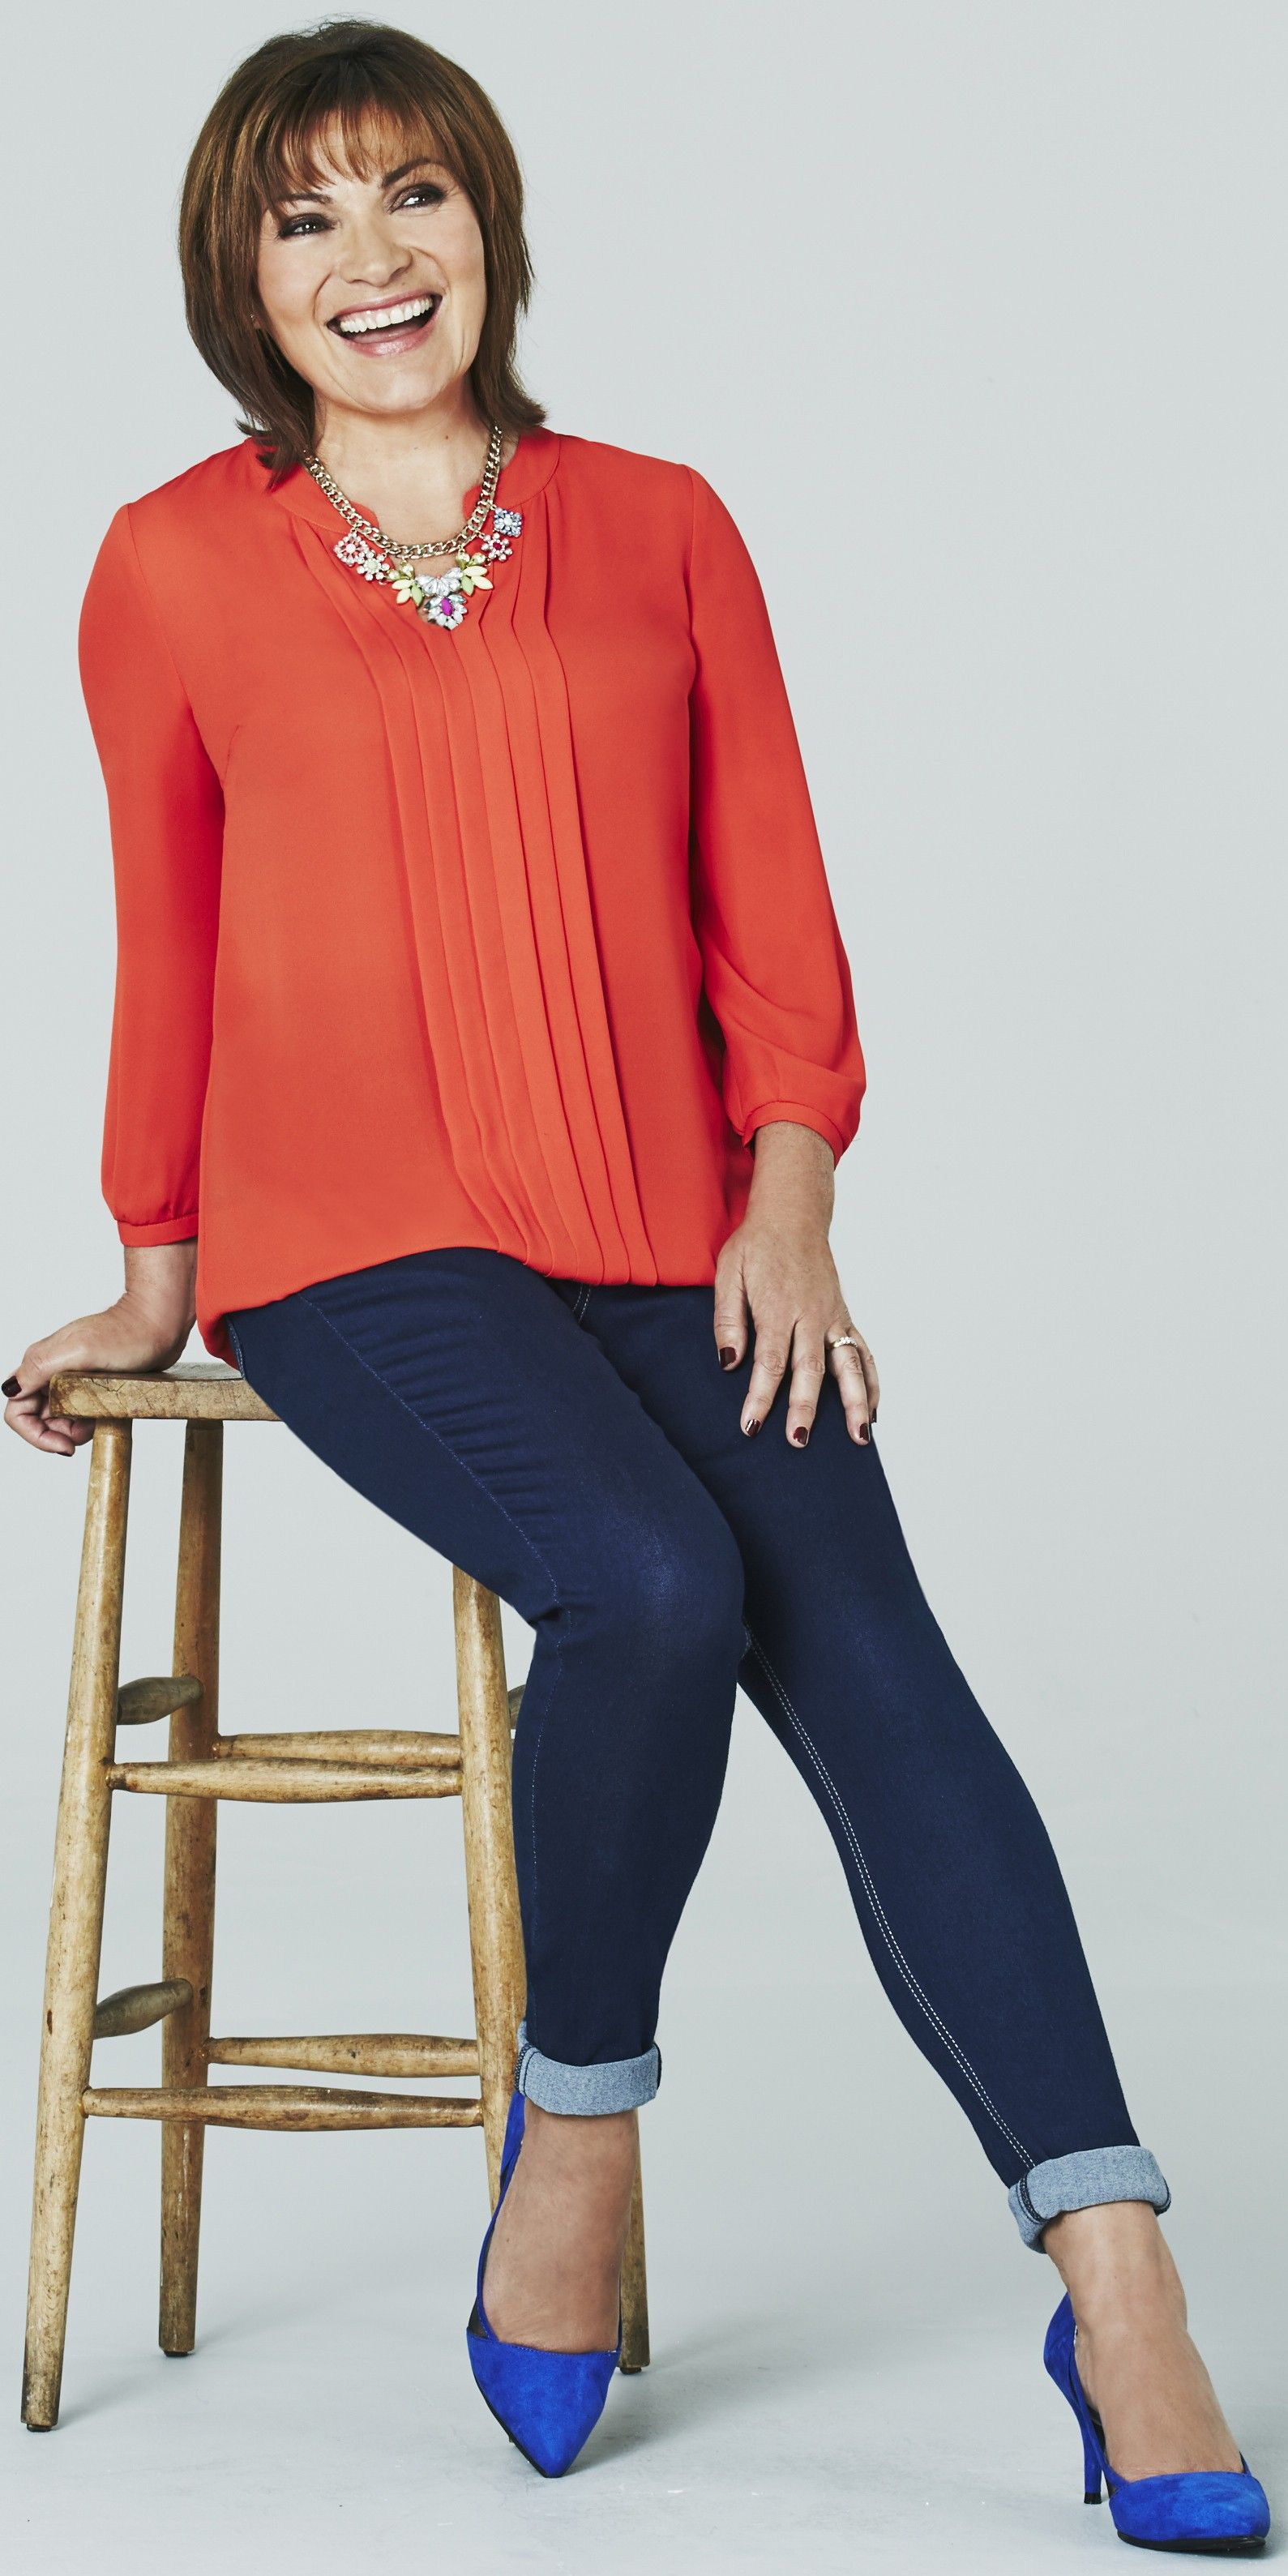 plus size petites - they're not impossible to find - i've found